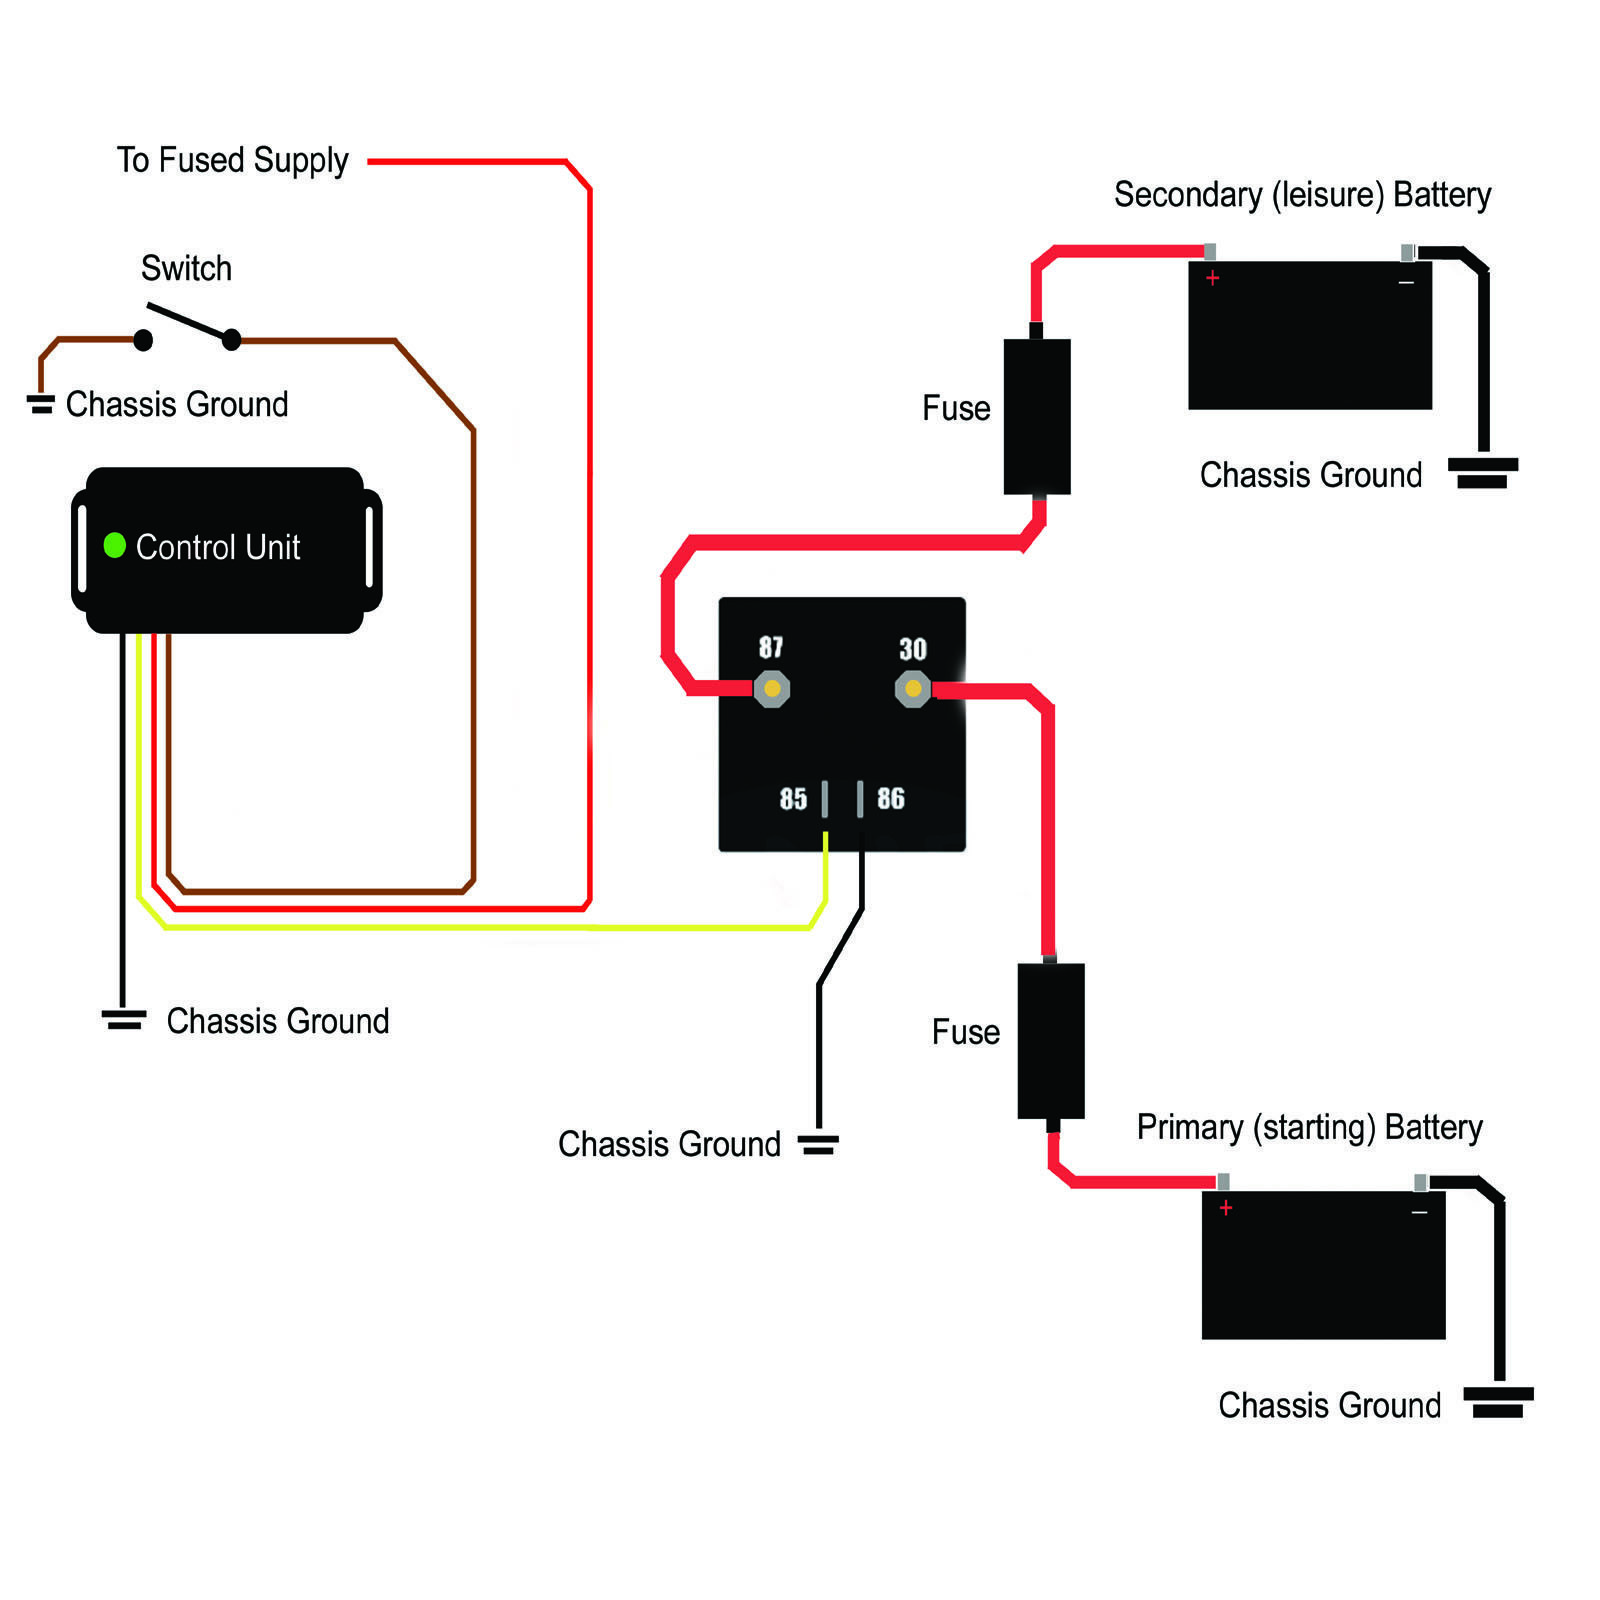 wiring diagram for a electrolux 3 way fridge bighawks keyless entry system caravan schematic how to wire your camper conversion the professional and save money